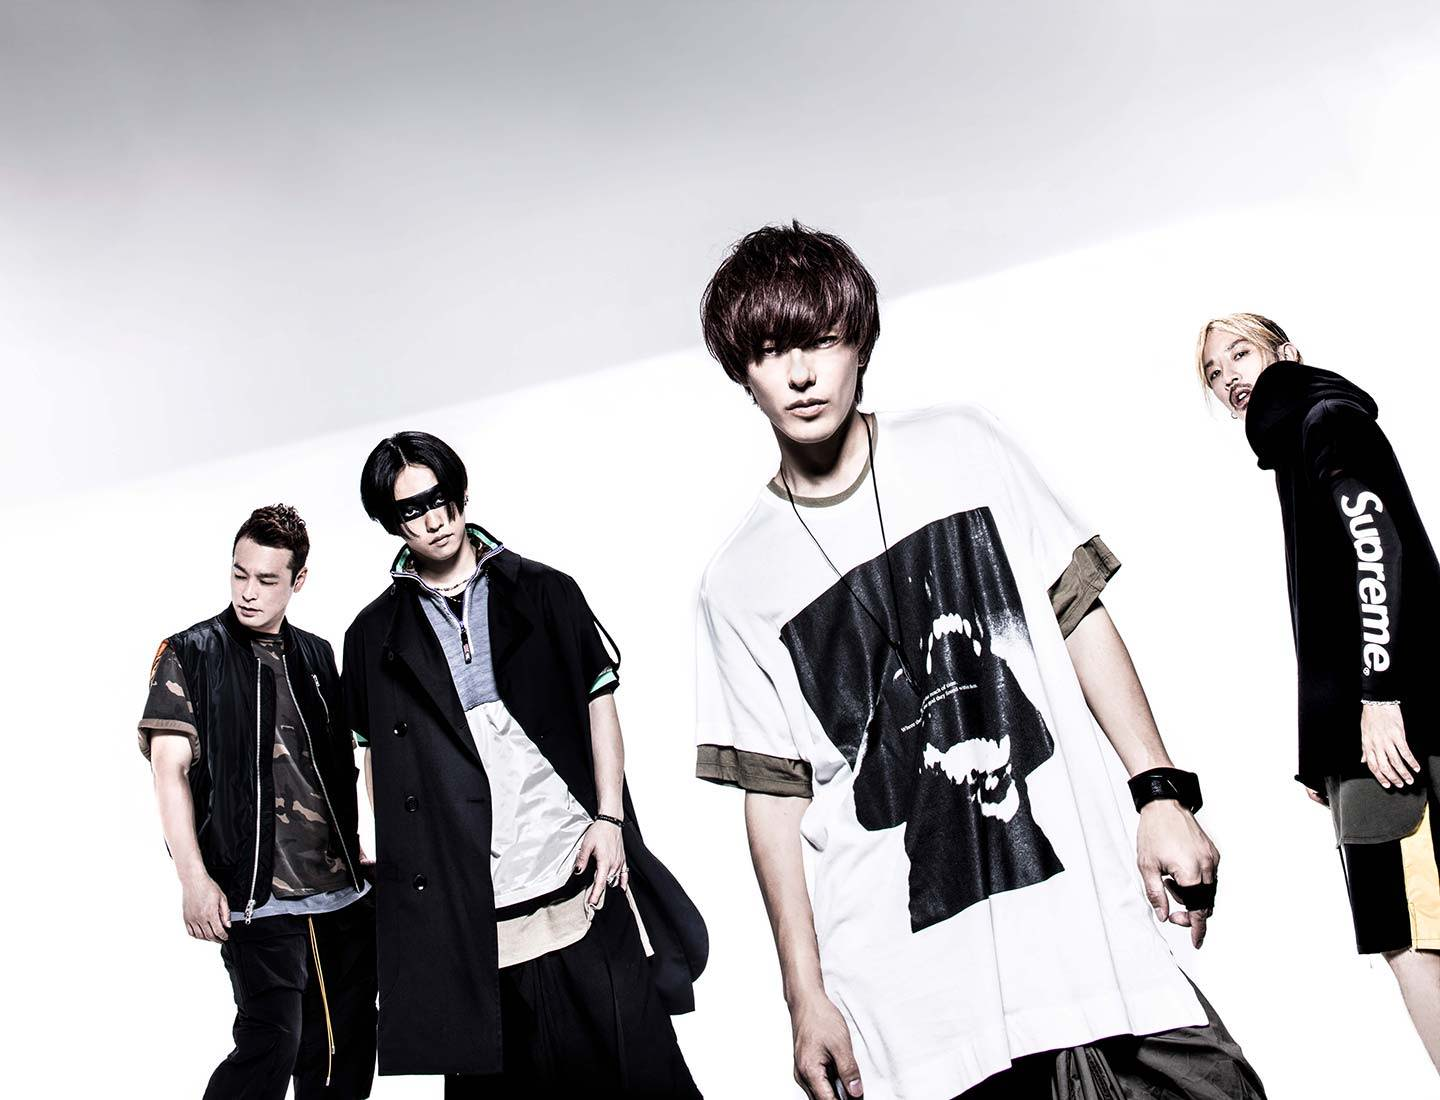 SPYAIR Japanese band pic